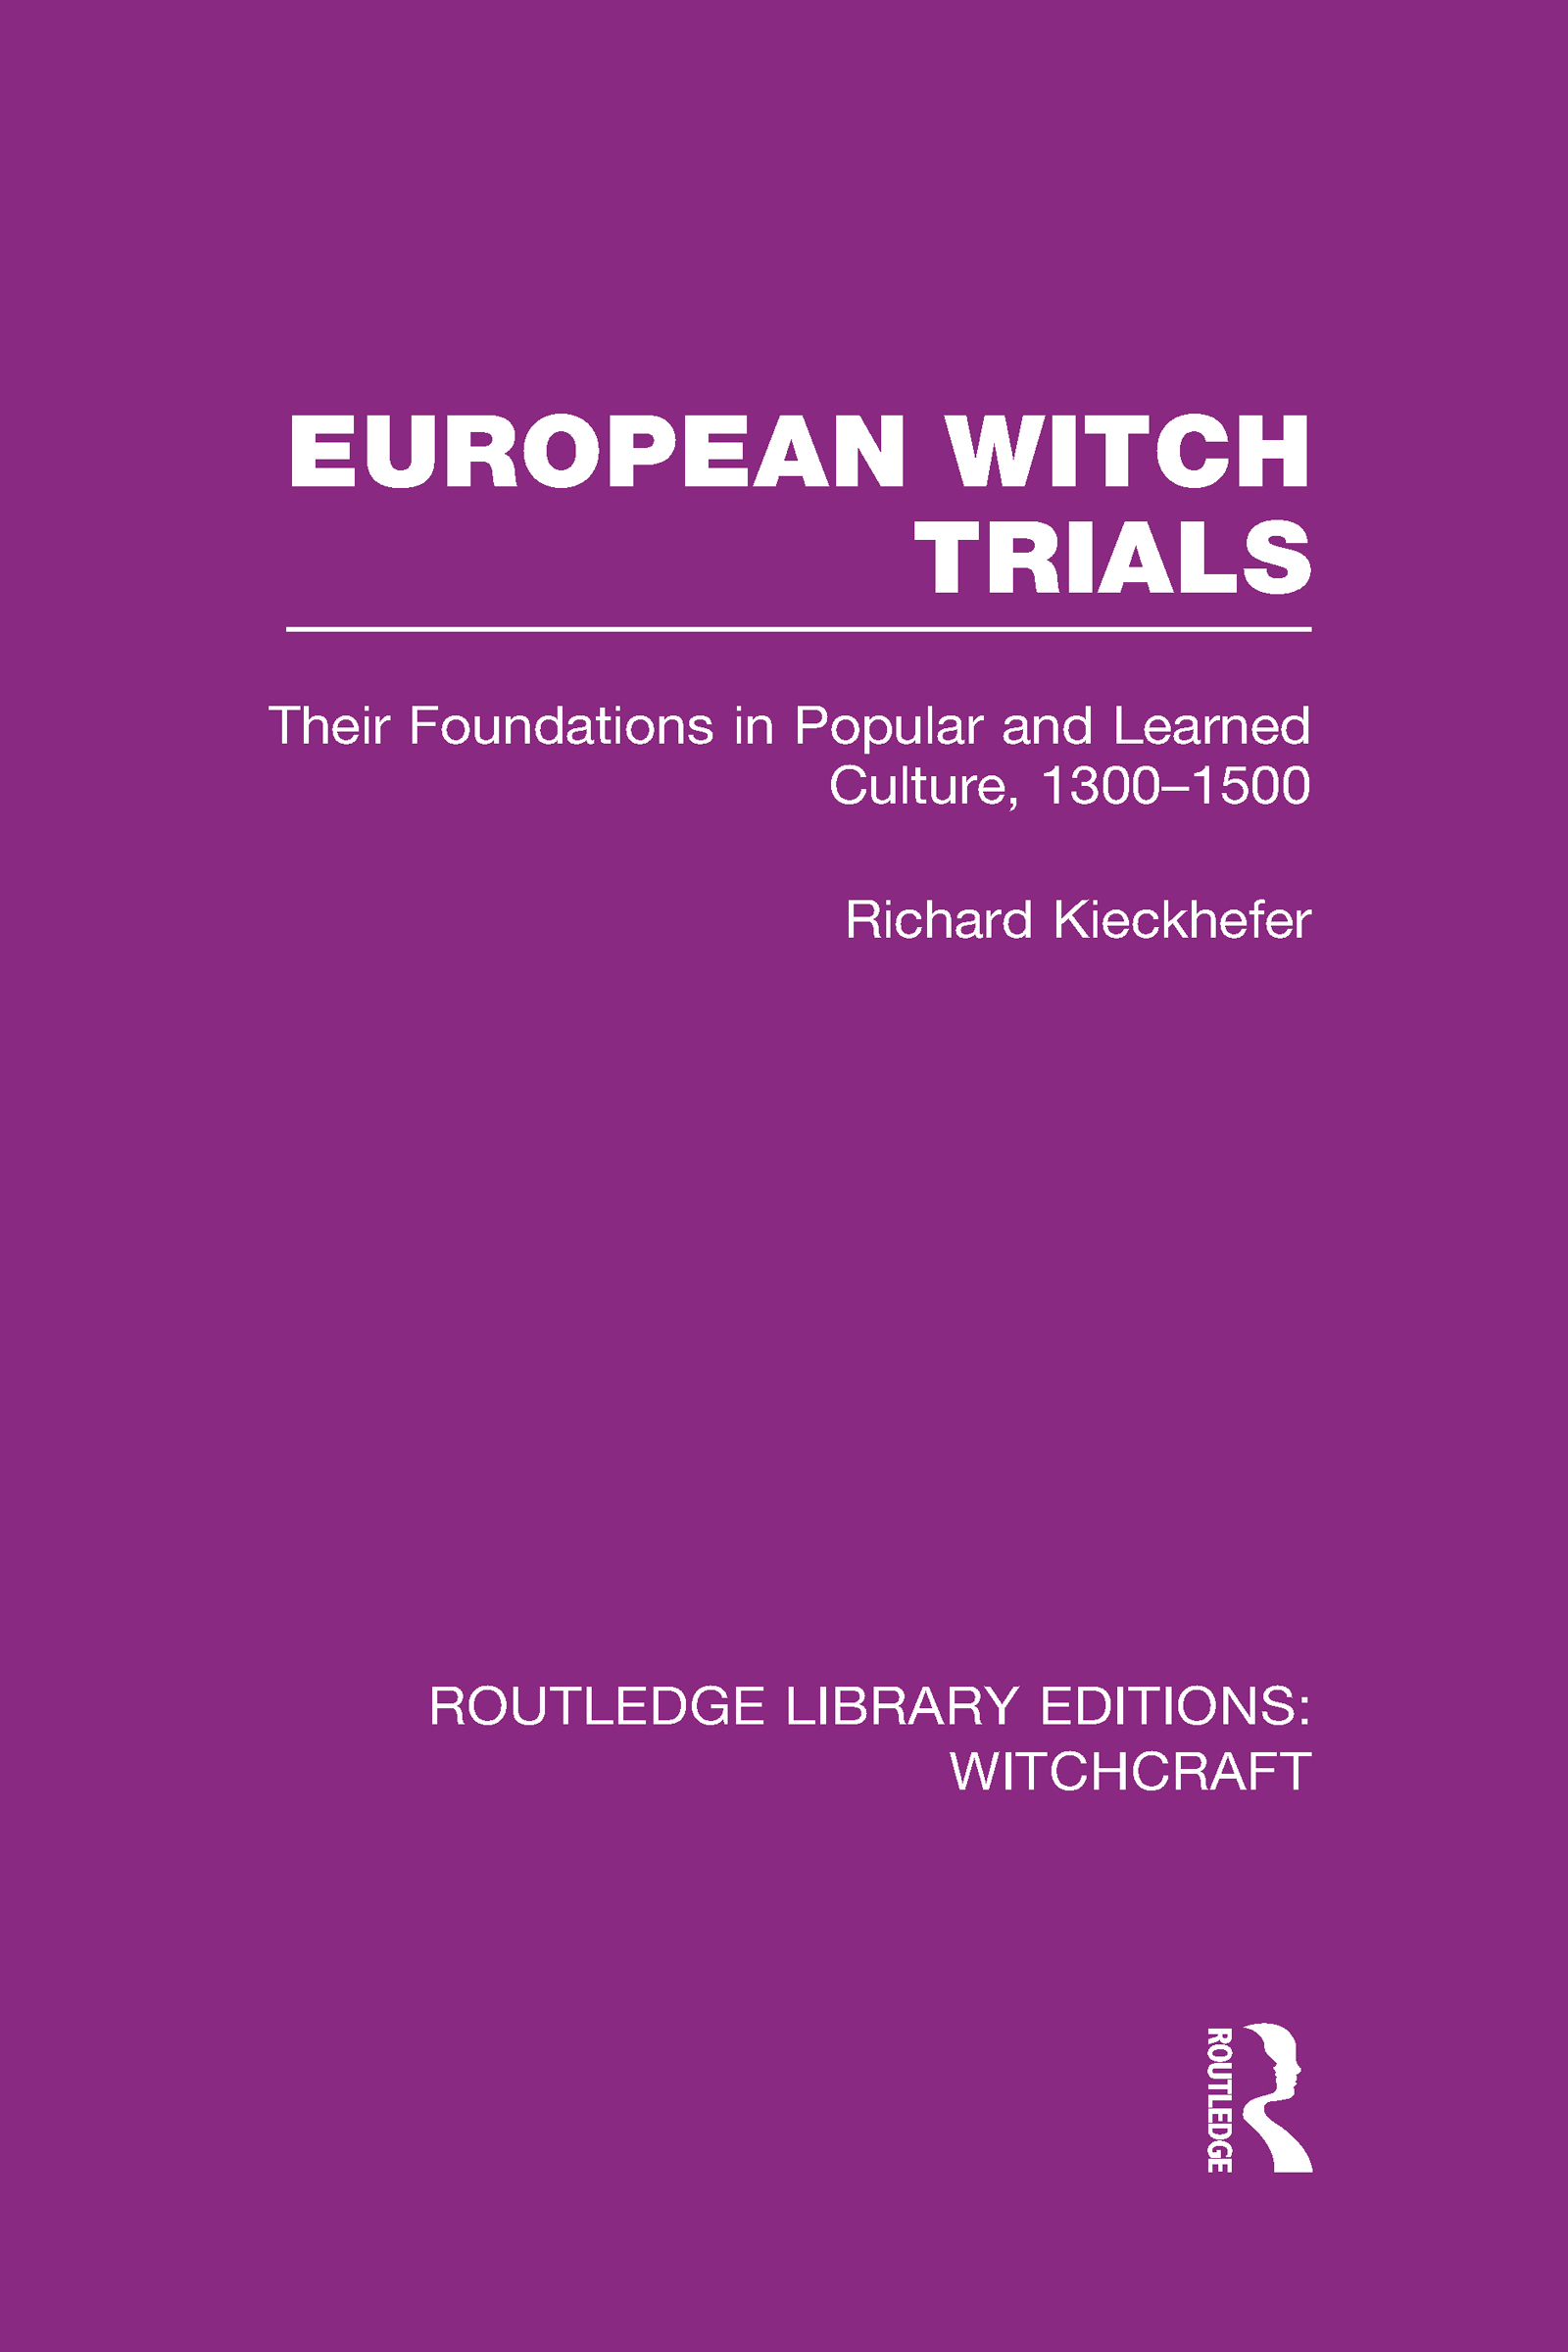 European Witch Trials (RLE Witchcraft): Their Foundations in Popular and Learned Culture, 1300-1500, 1st Edition (Paperback) book cover